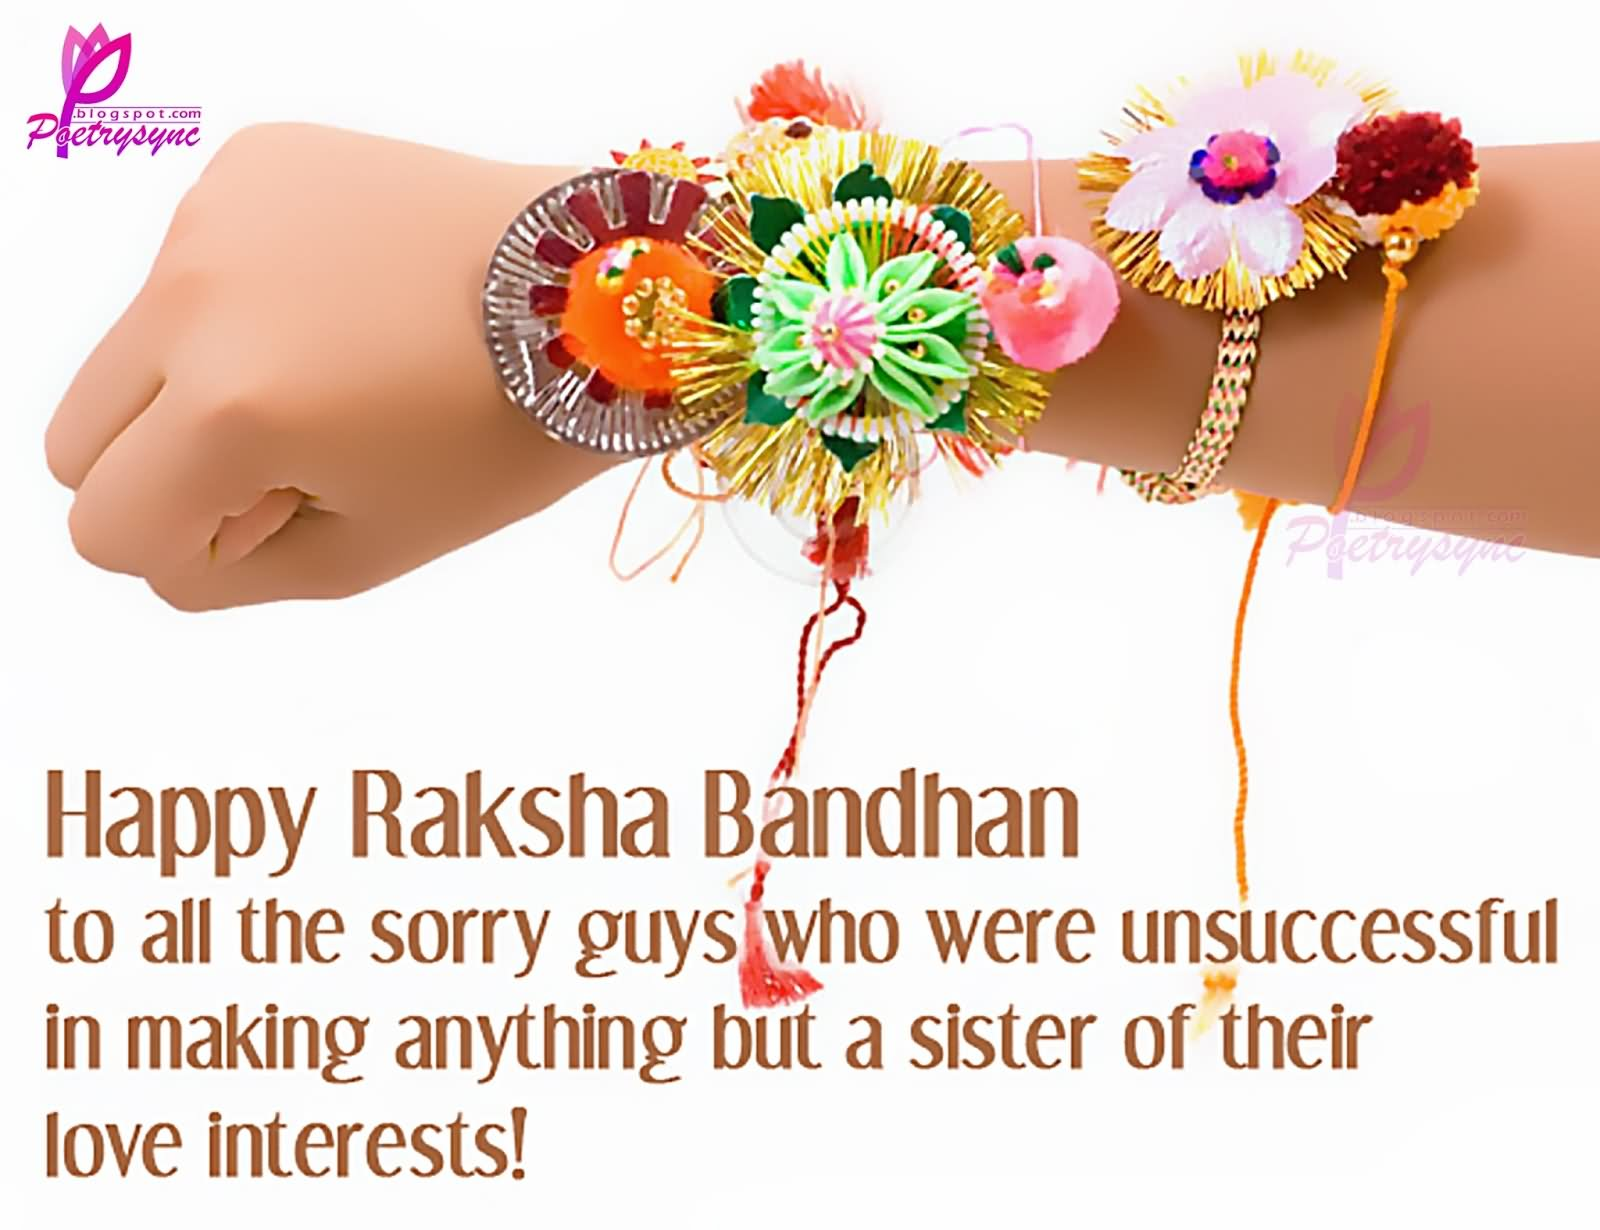 25 most beautiful rakshan bandhan wishes for sister images and photos happy raksha bandhan greetings for sister picture kristyandbryce Image collections